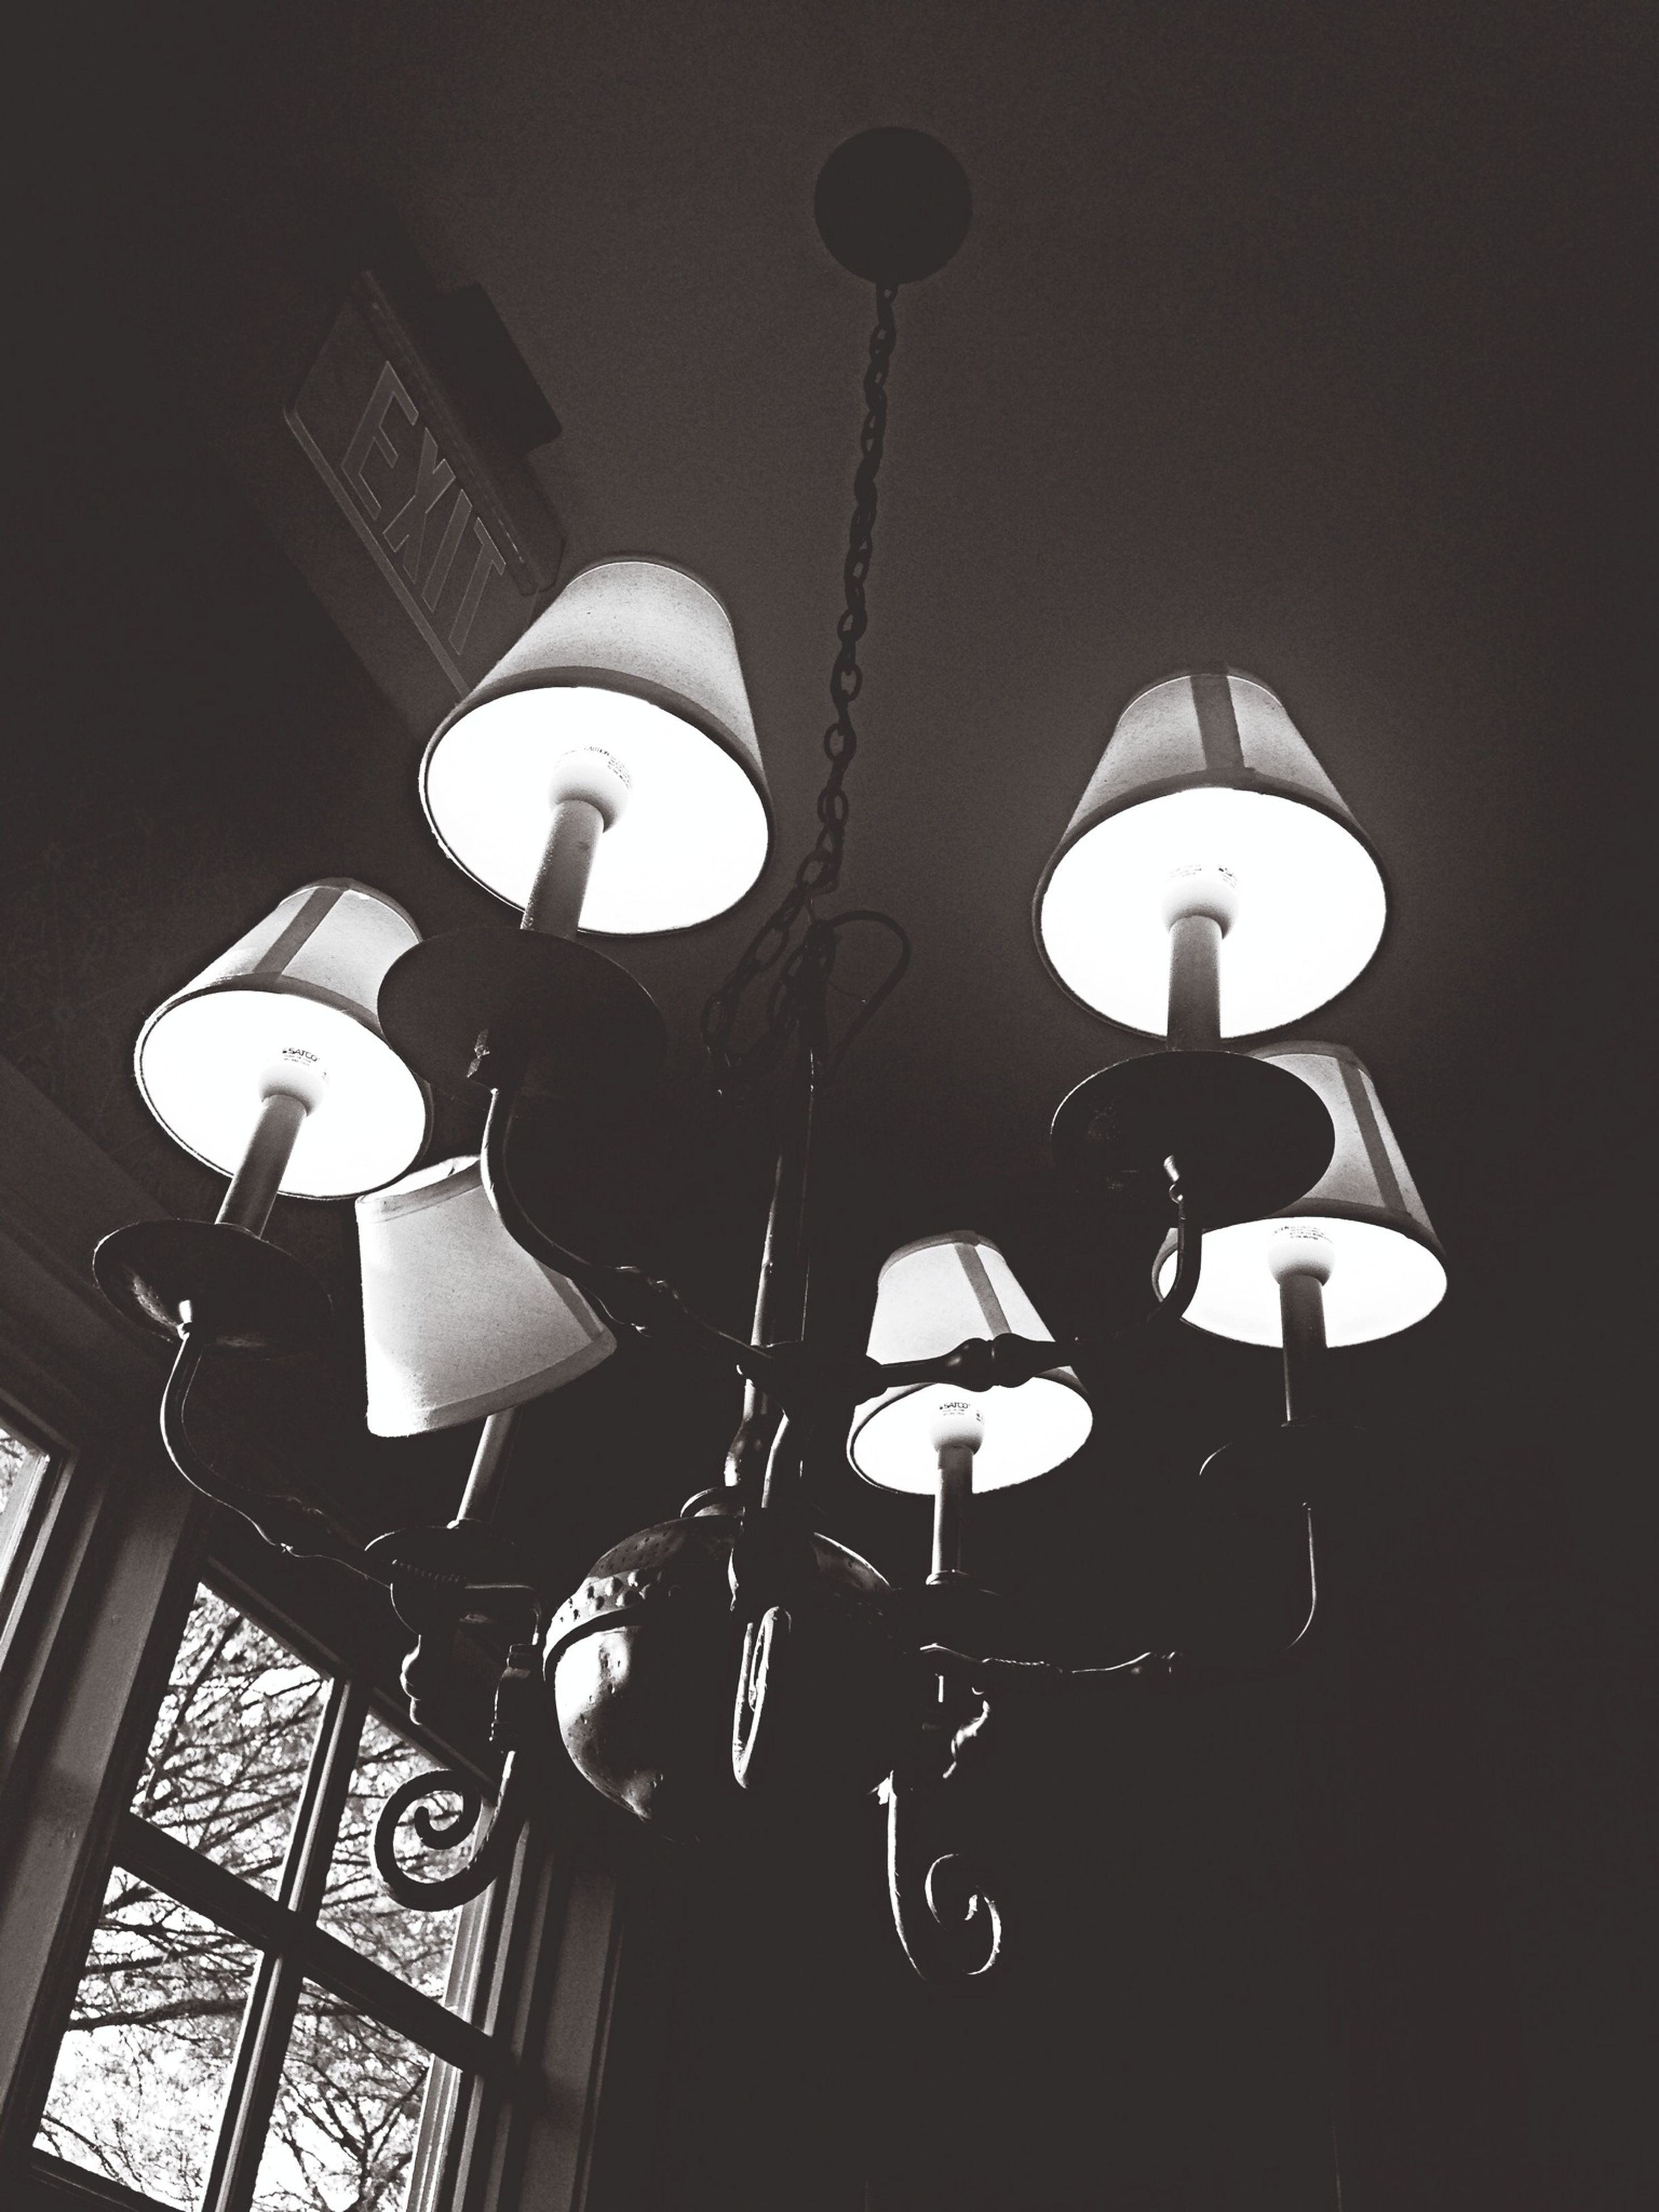 lighting equipment, low angle view, illuminated, electric lamp, electricity, hanging, indoors, street light, electric light, ceiling, lamp, built structure, architecture, decoration, no people, night, lantern, religion, light - natural phenomenon, wall - building feature